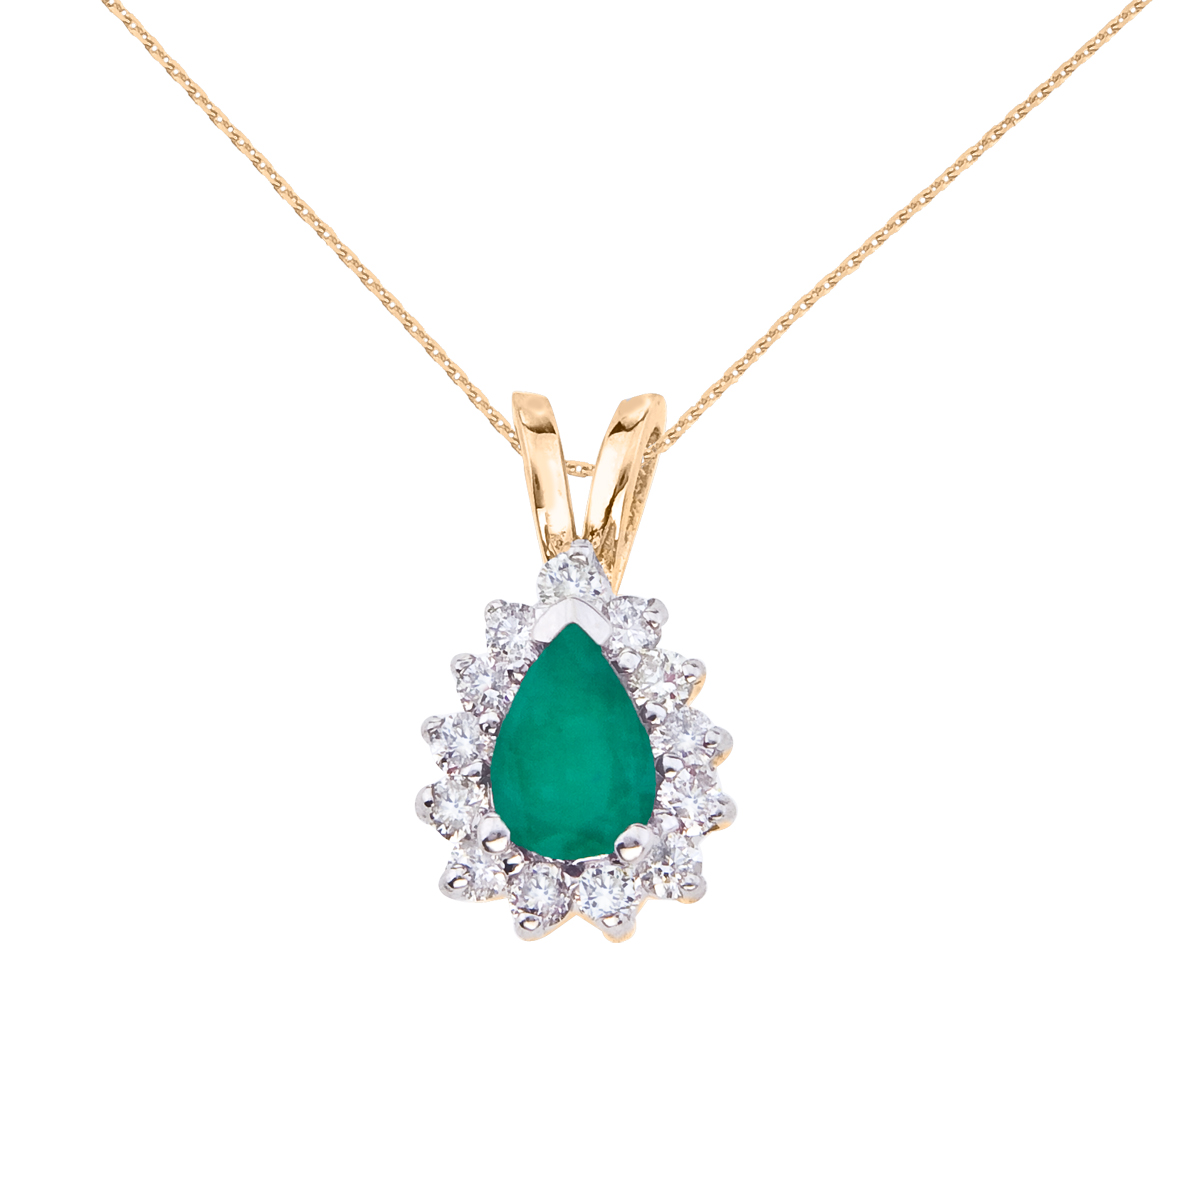 Direct 14k Yellow Gold 6x4 mm Pear Shaped Emerald and Dia...